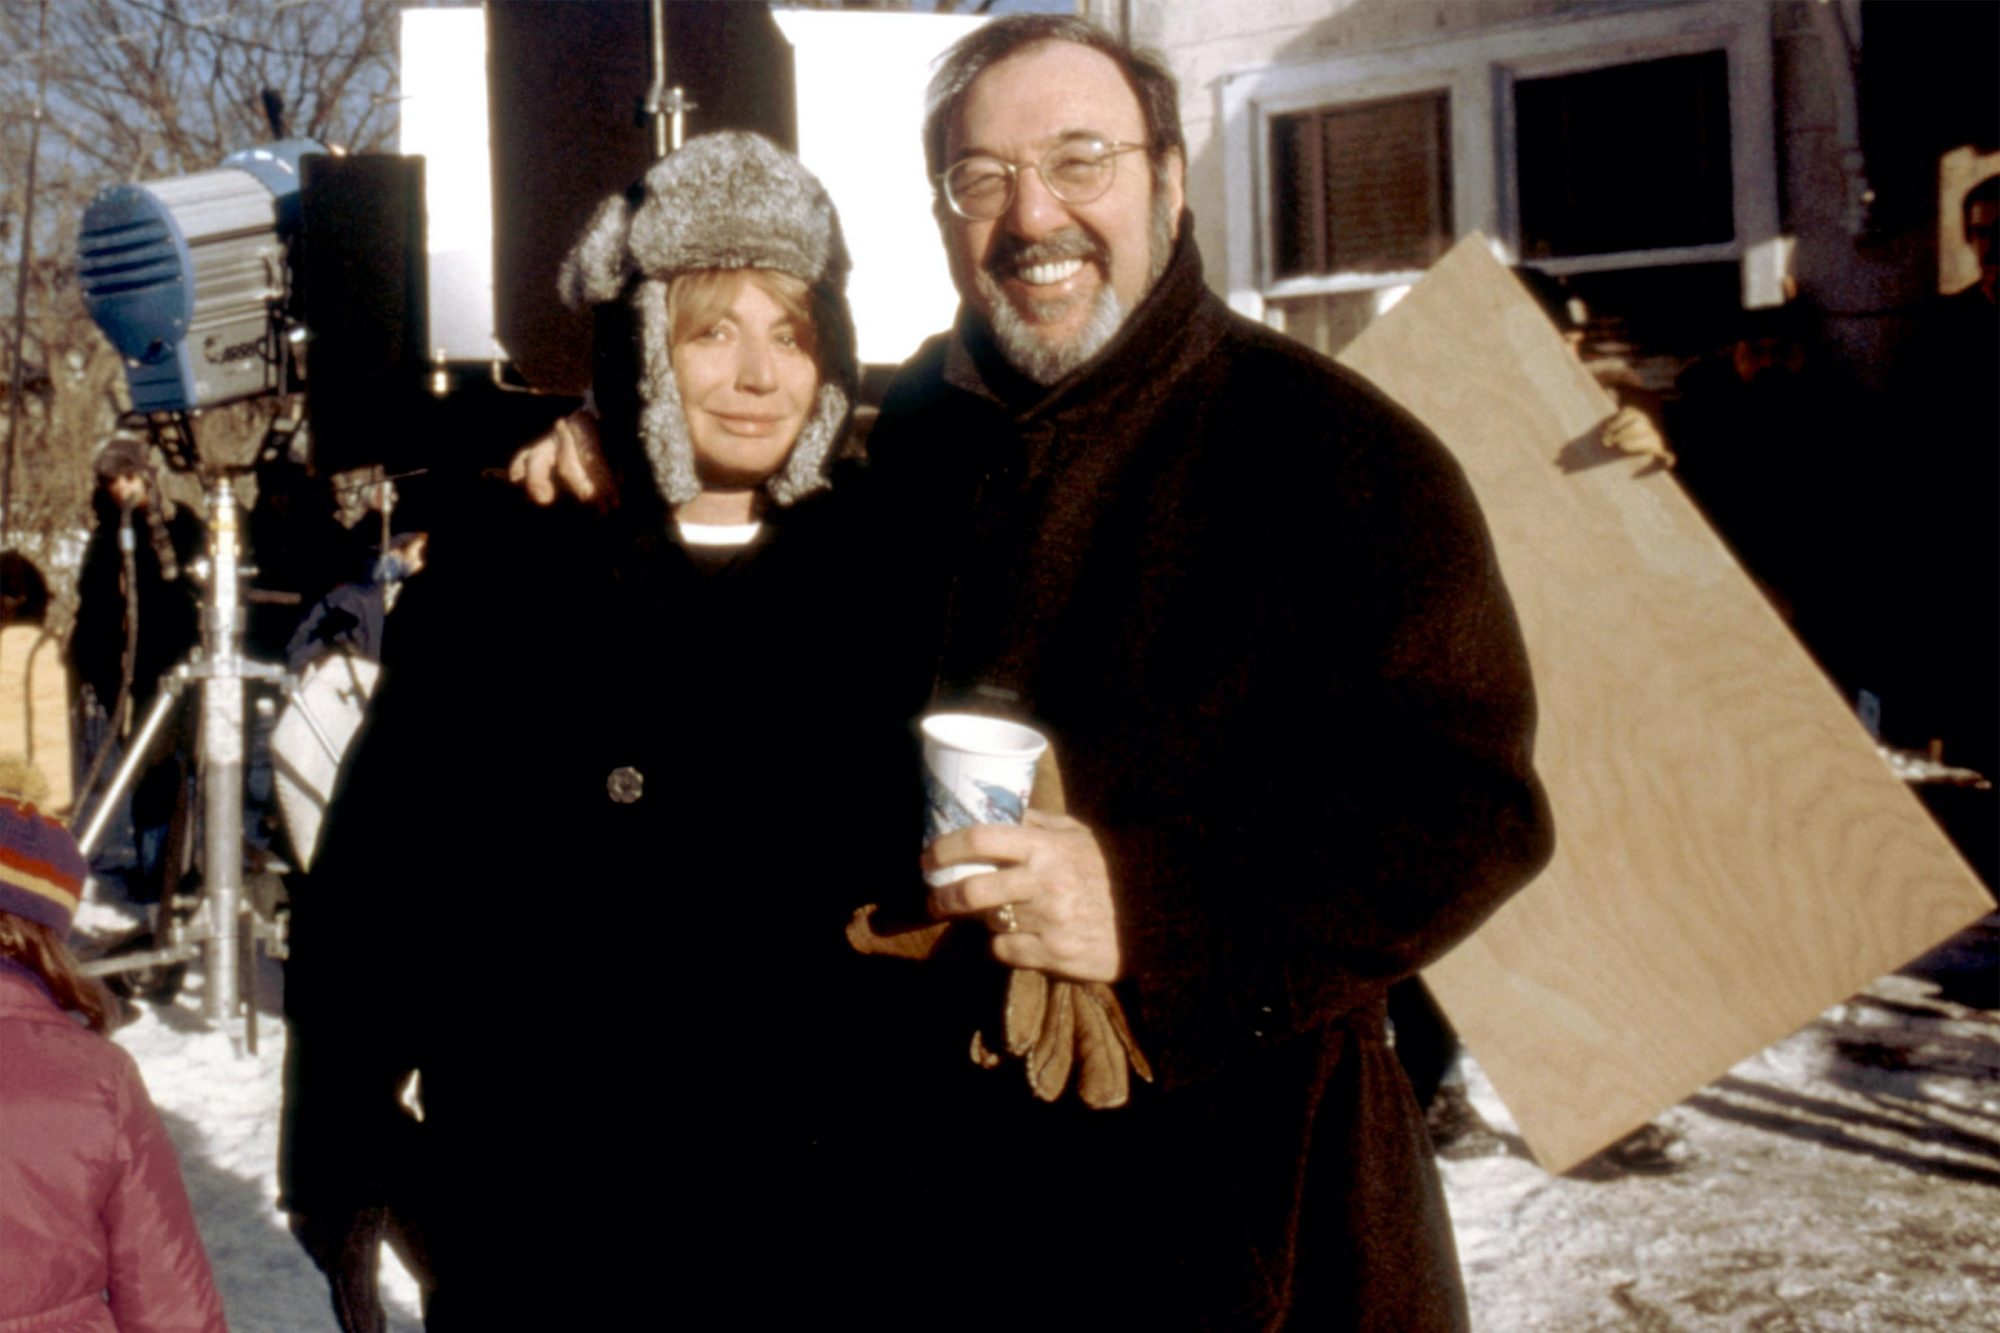 RIDING IN CARS WITH BOYS, director Penny Marshall, producer James L. Brooks, on set, 2001. ©Columbia